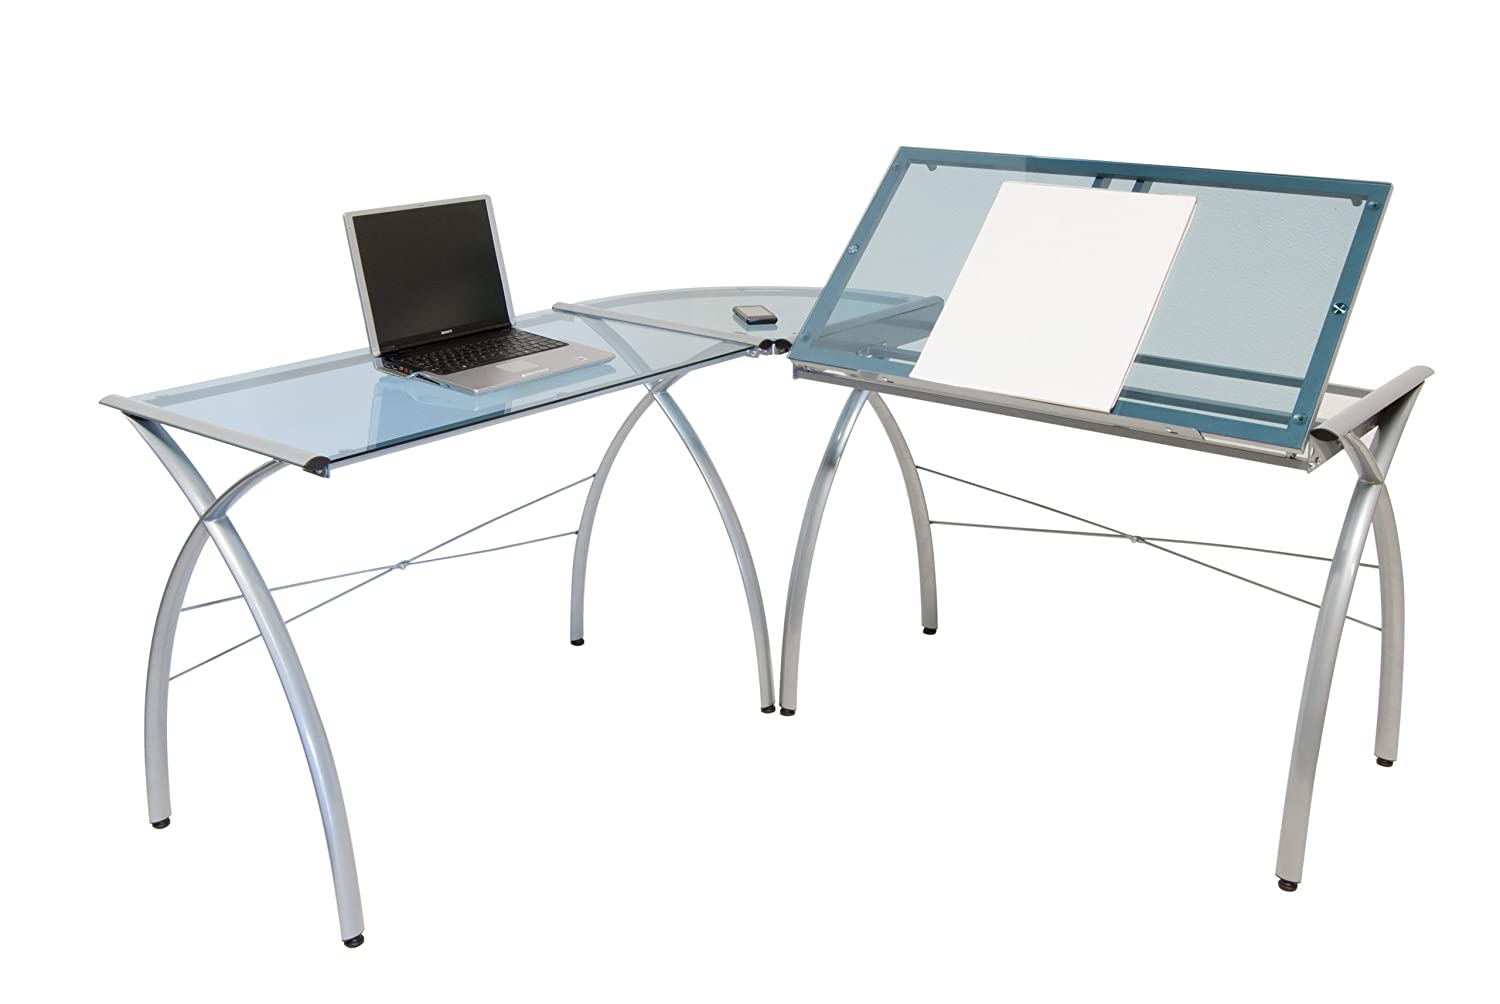 Drafting table home design ideas how to choose the best drafting - Studio Designs 50306 Futura Ls Work Center With Tilt Silver Blue Glass Modern Amazon Ca Home Kitchen